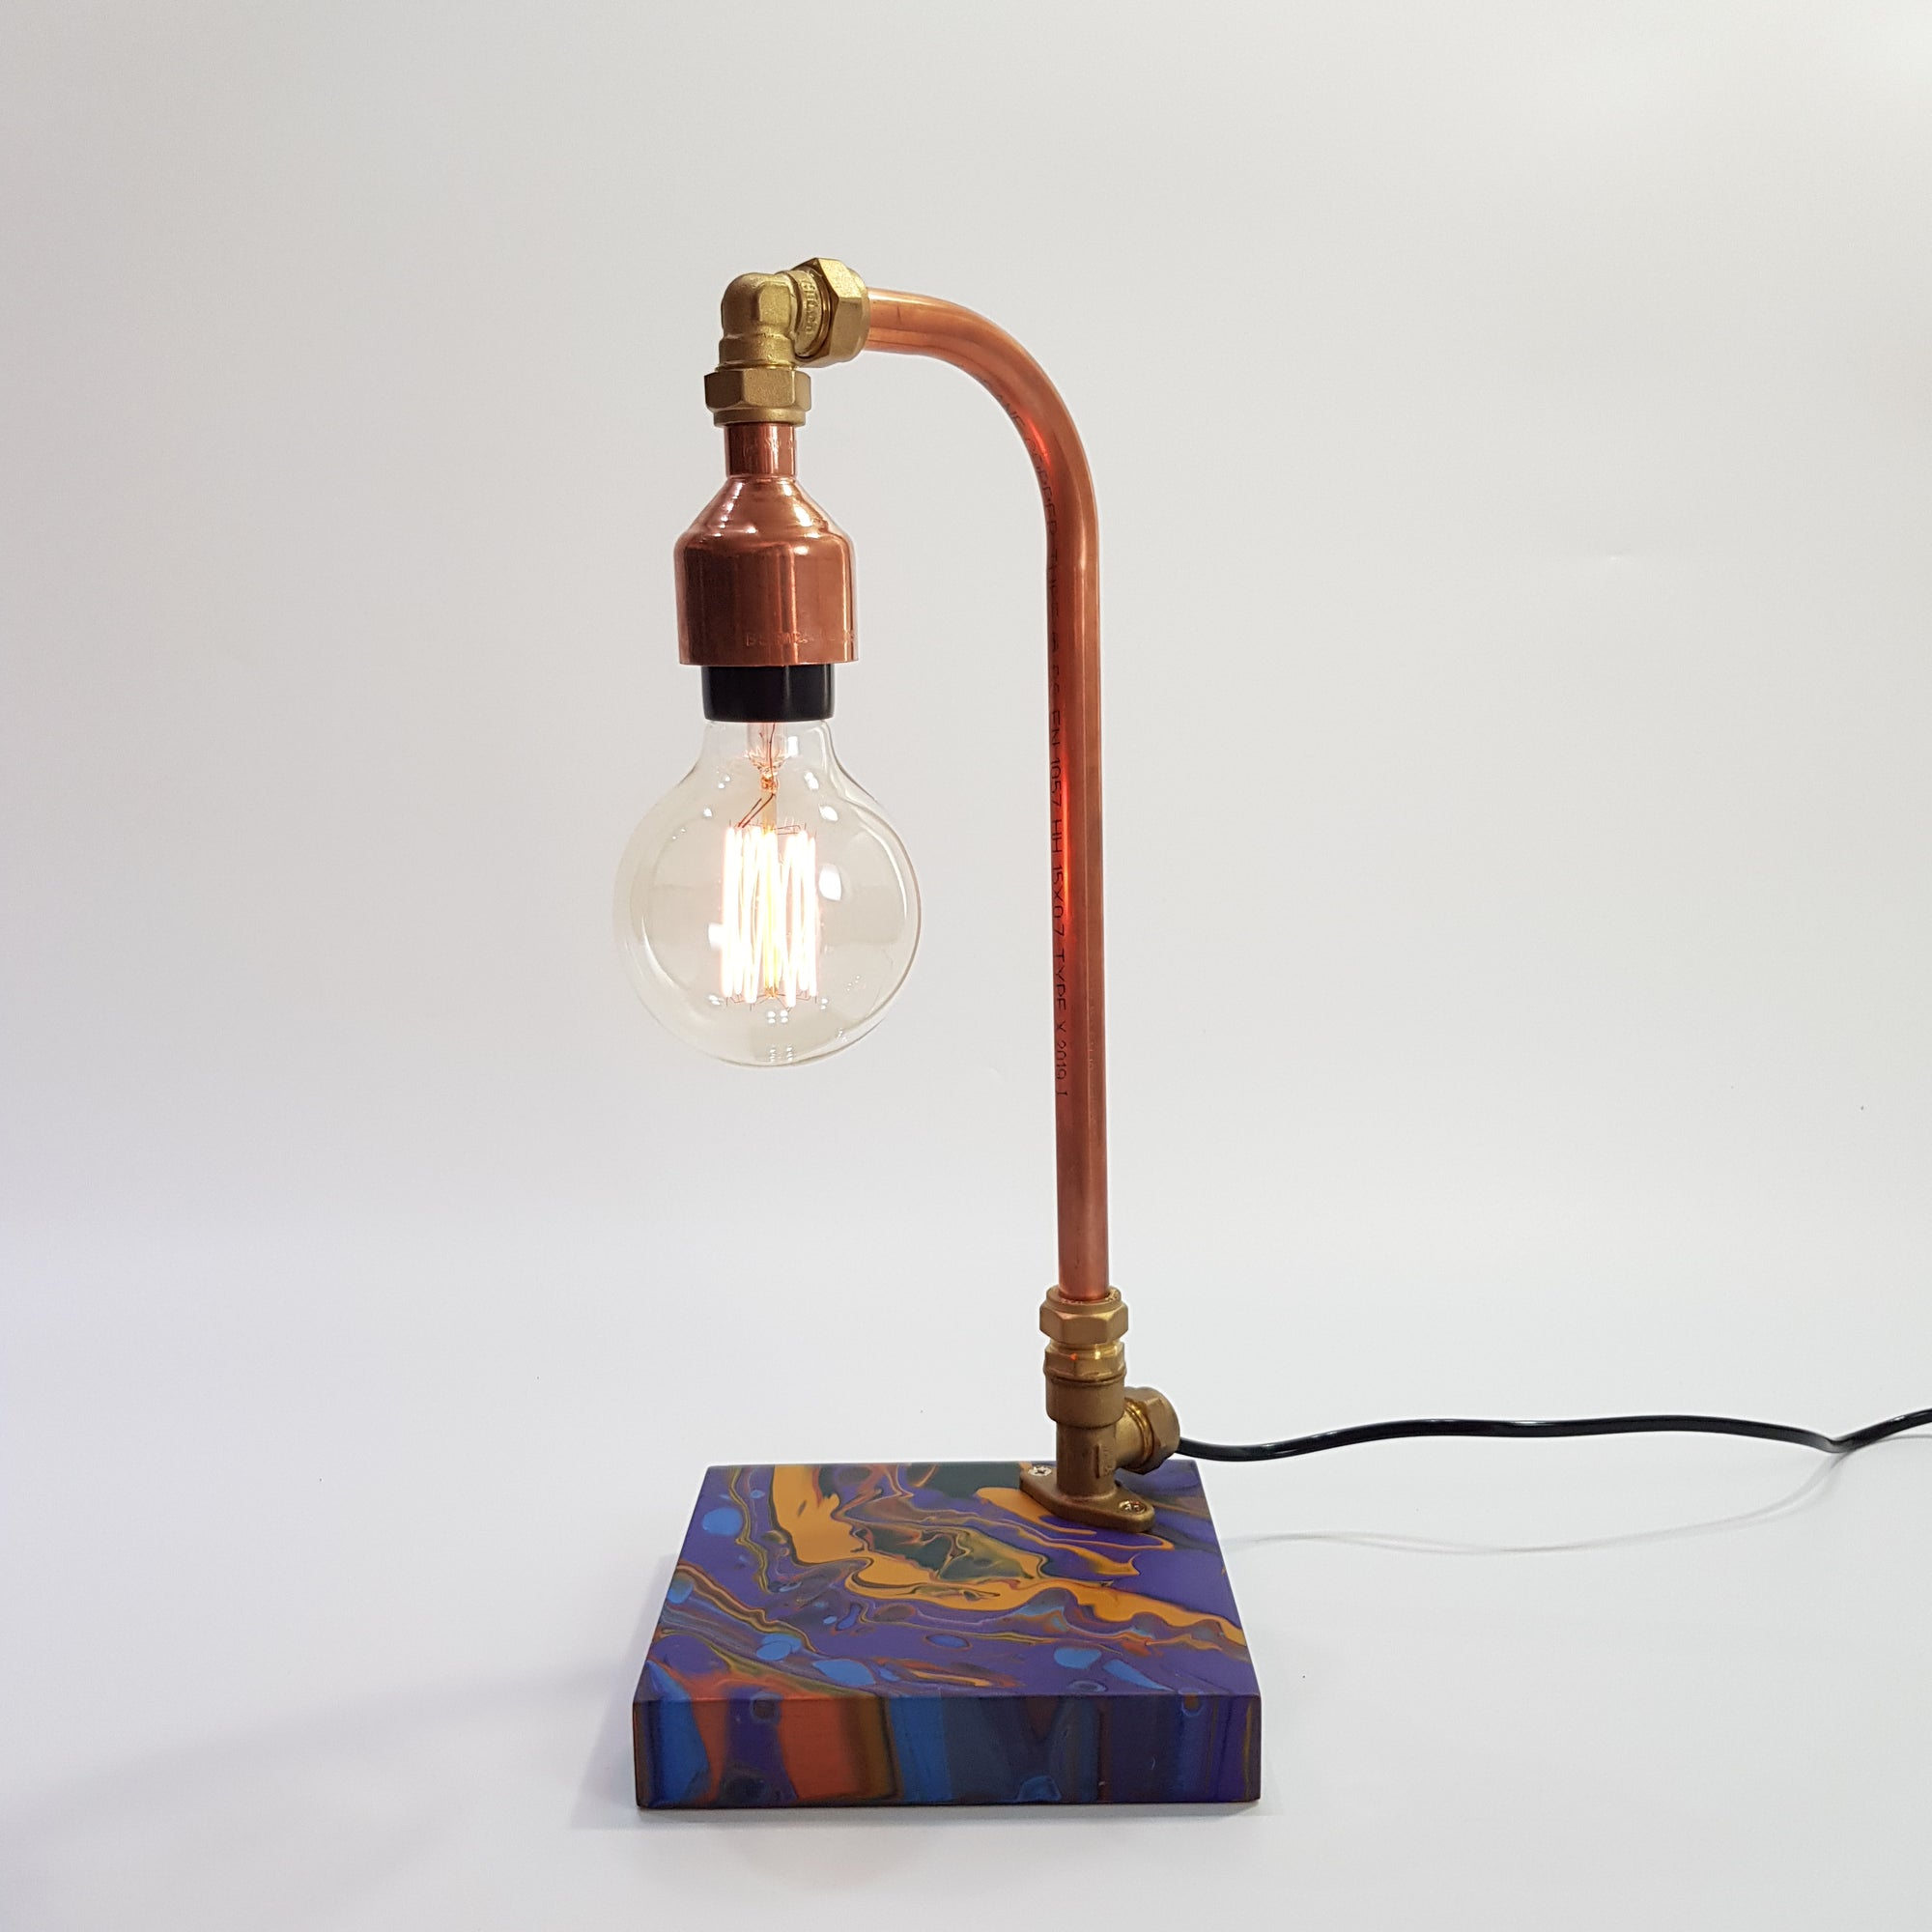 Handmade Copper Lamp with Acrylic Pour Art (2)